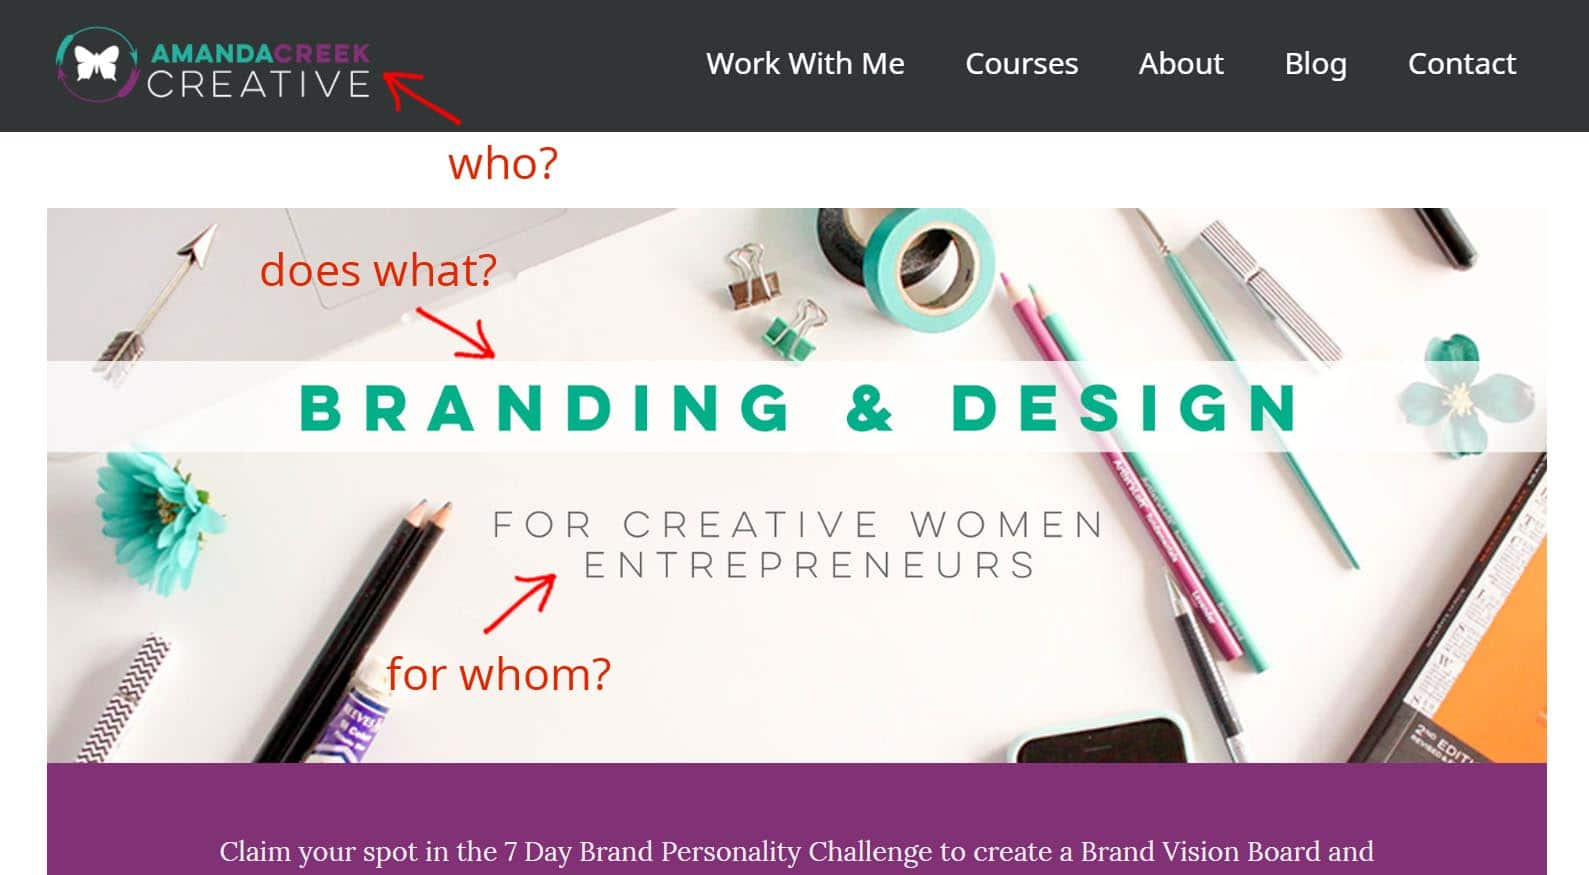 Example of great website tagline: Amanda Creek Creative